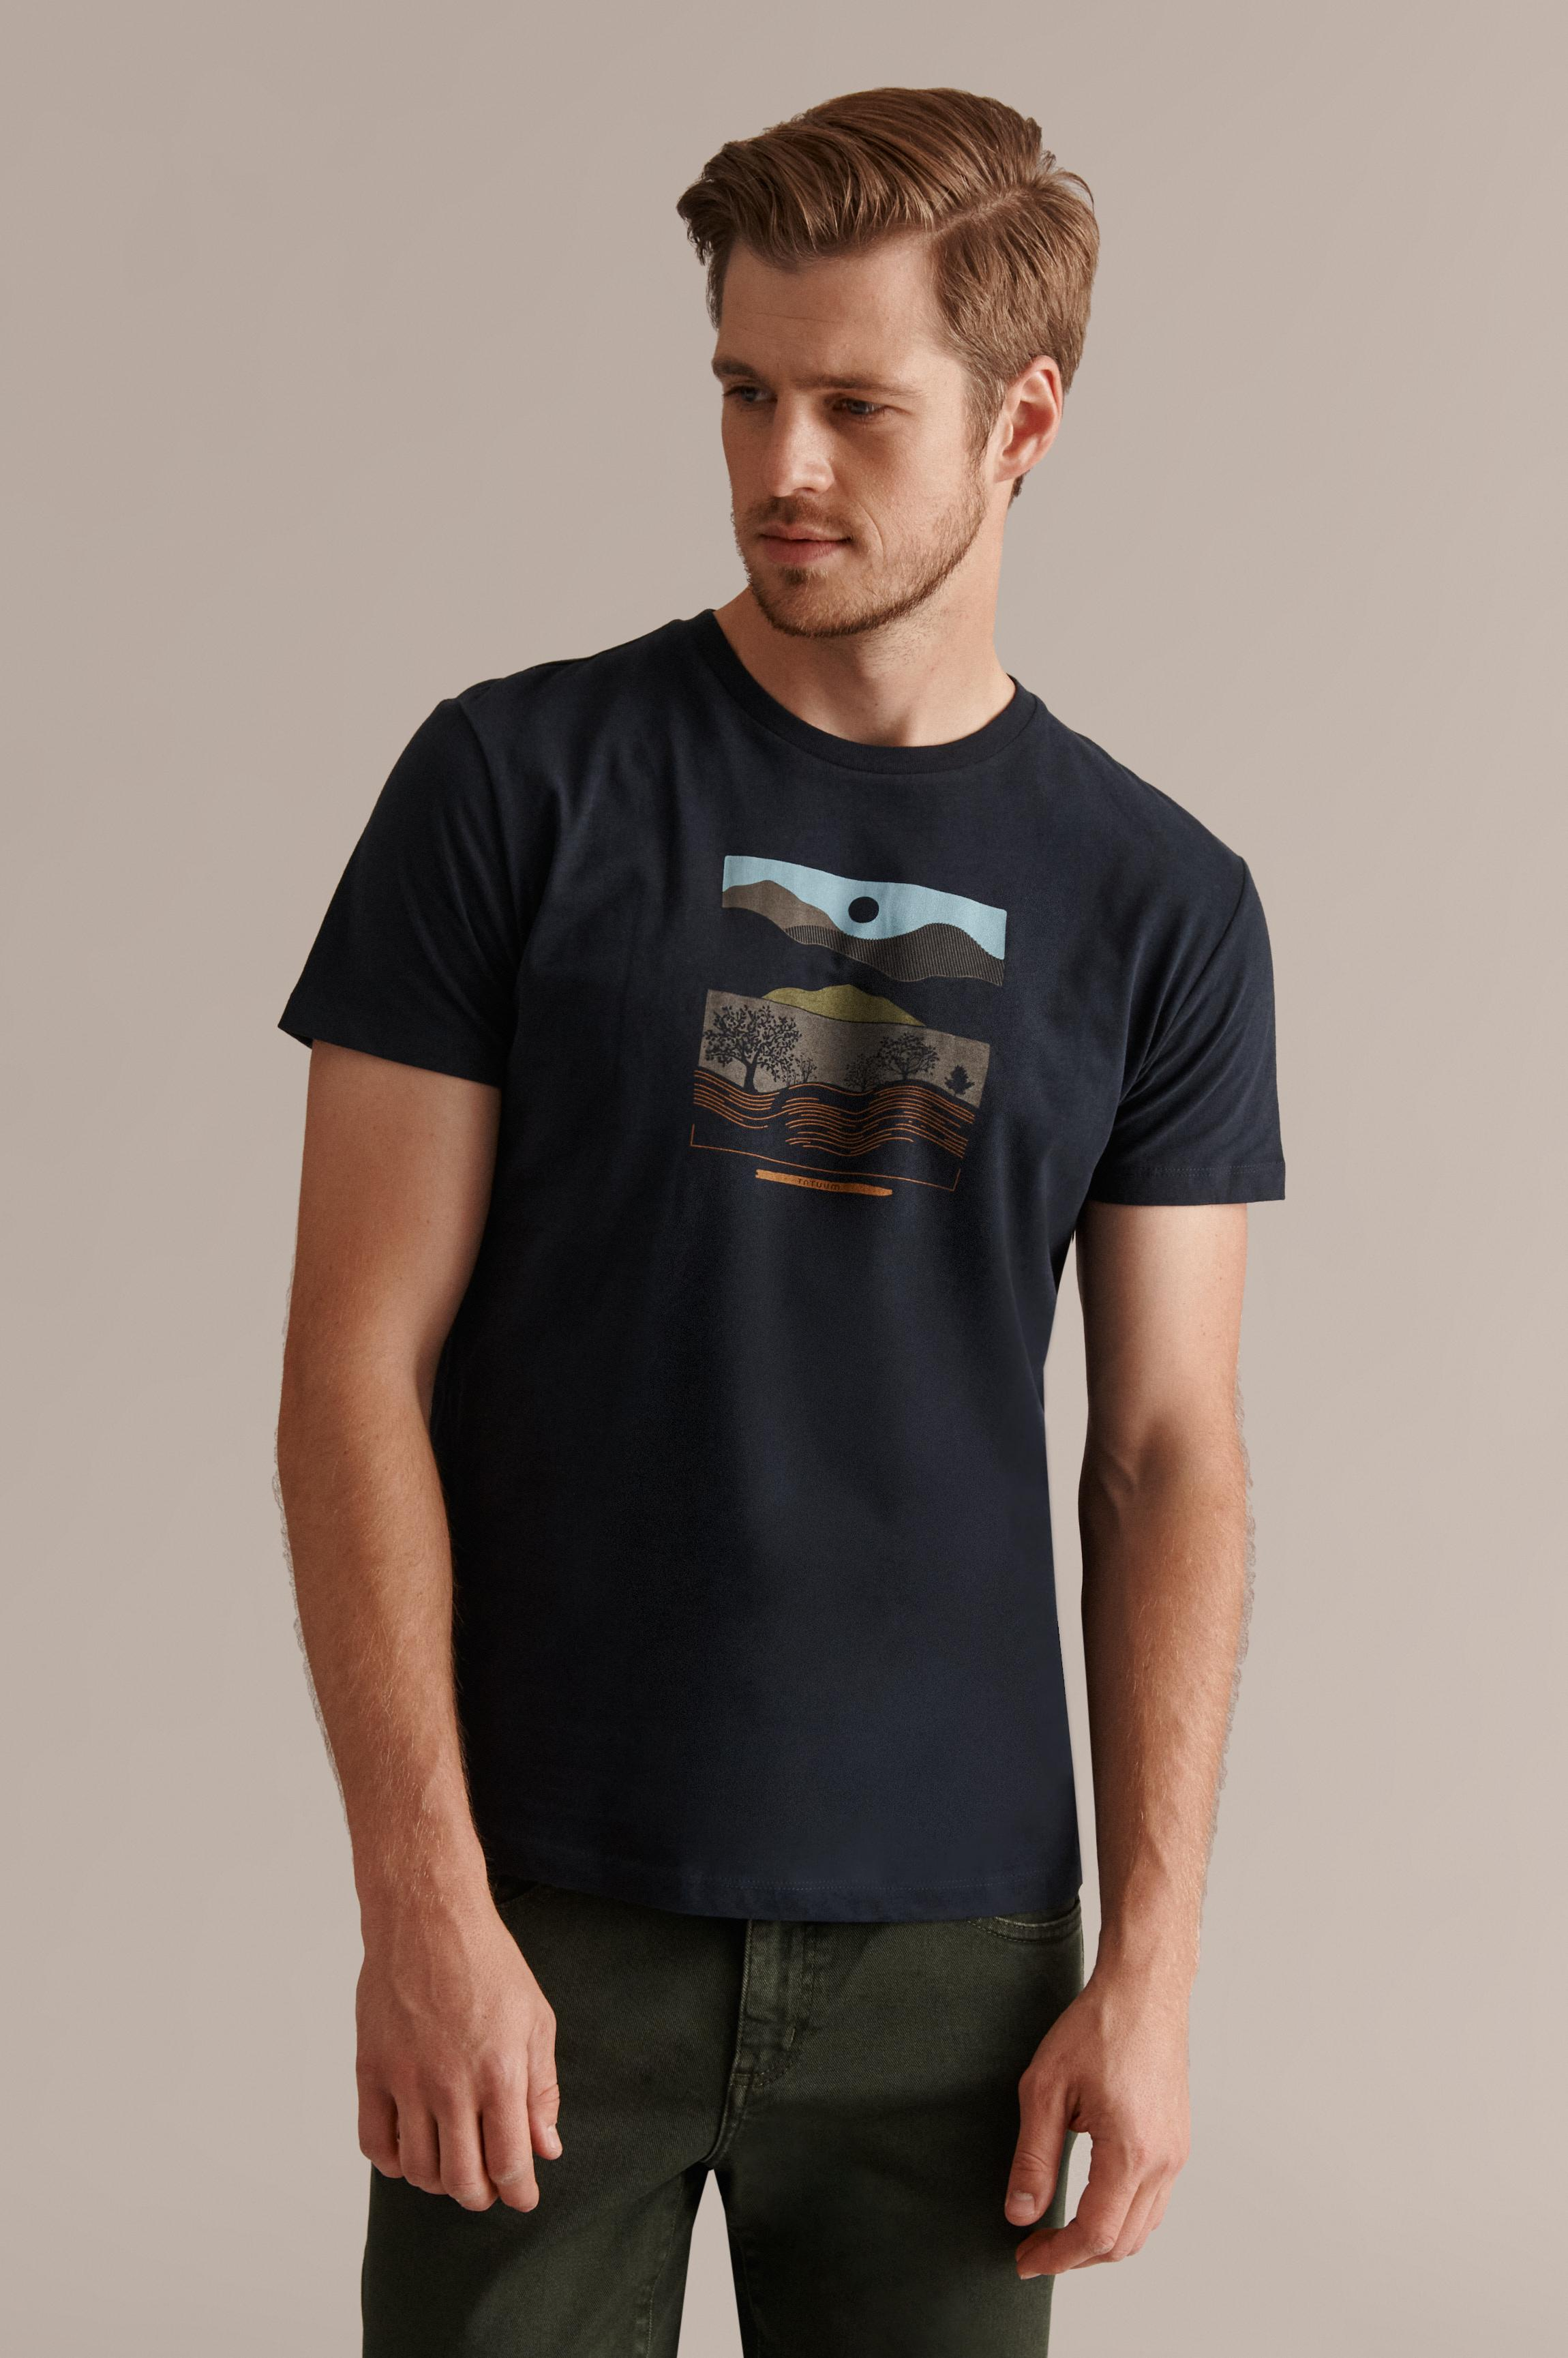 MEN'S T-SHIRT WITH A PRINT MIKIN 7